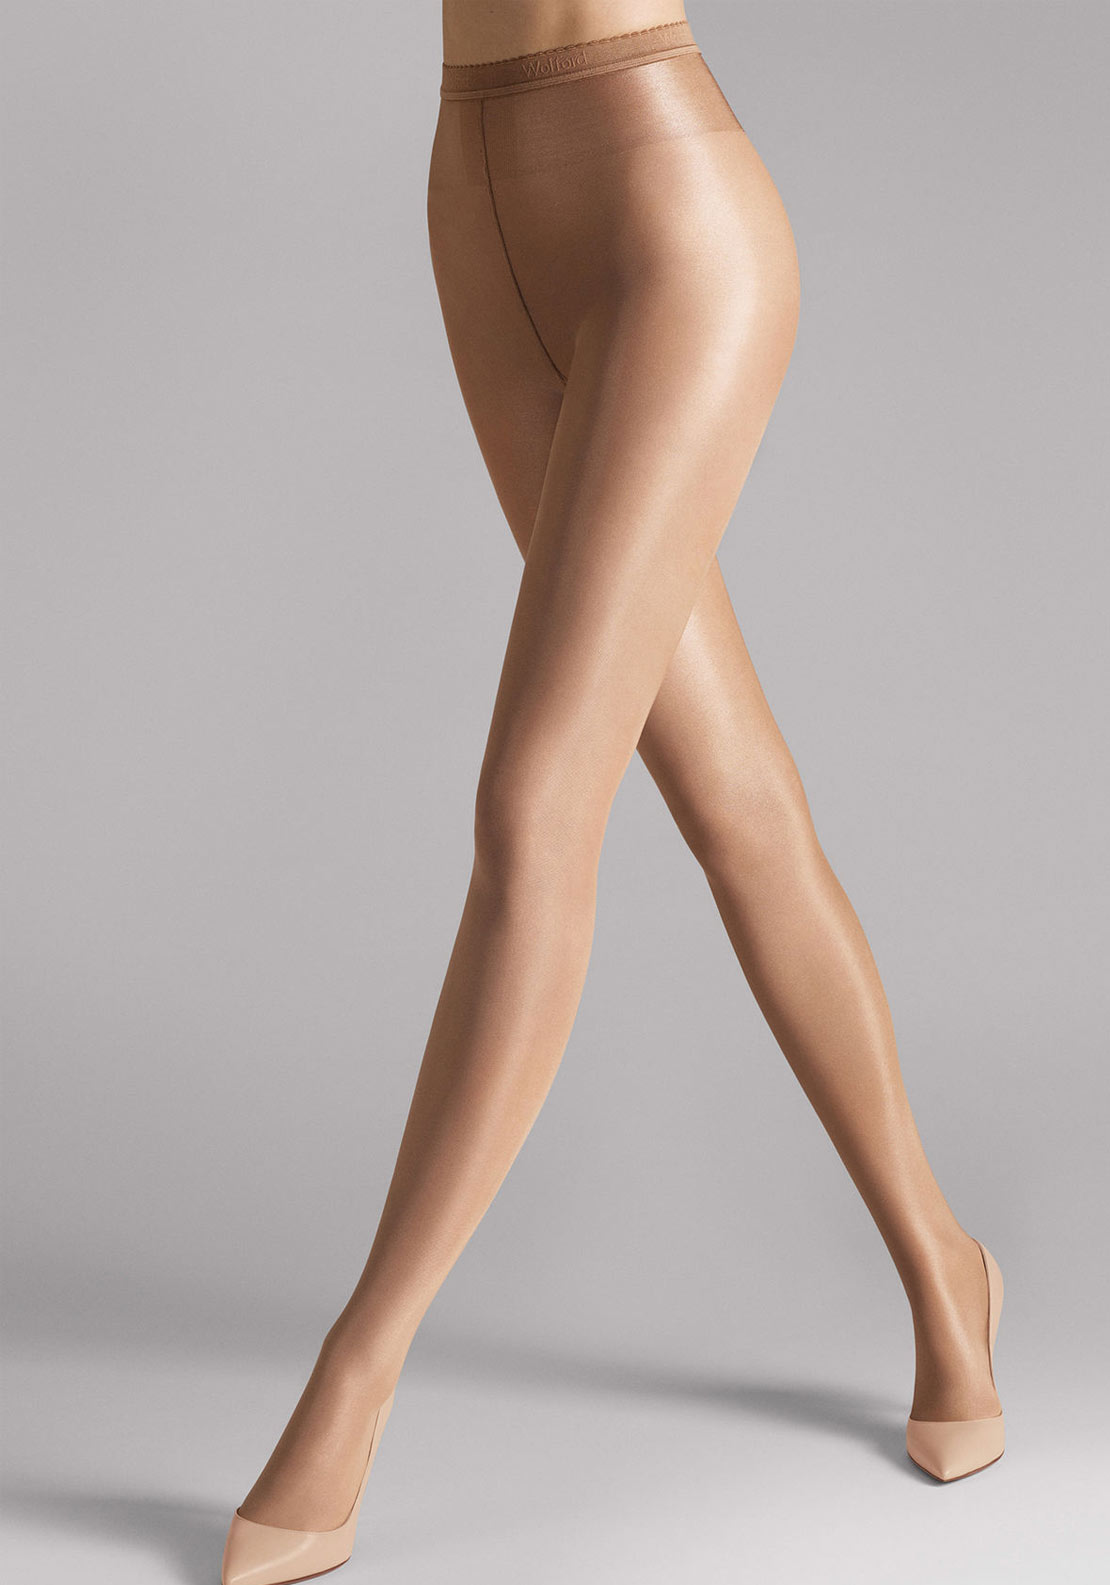 Wolford Neon 40 Semi Sheer Tights, Gobi